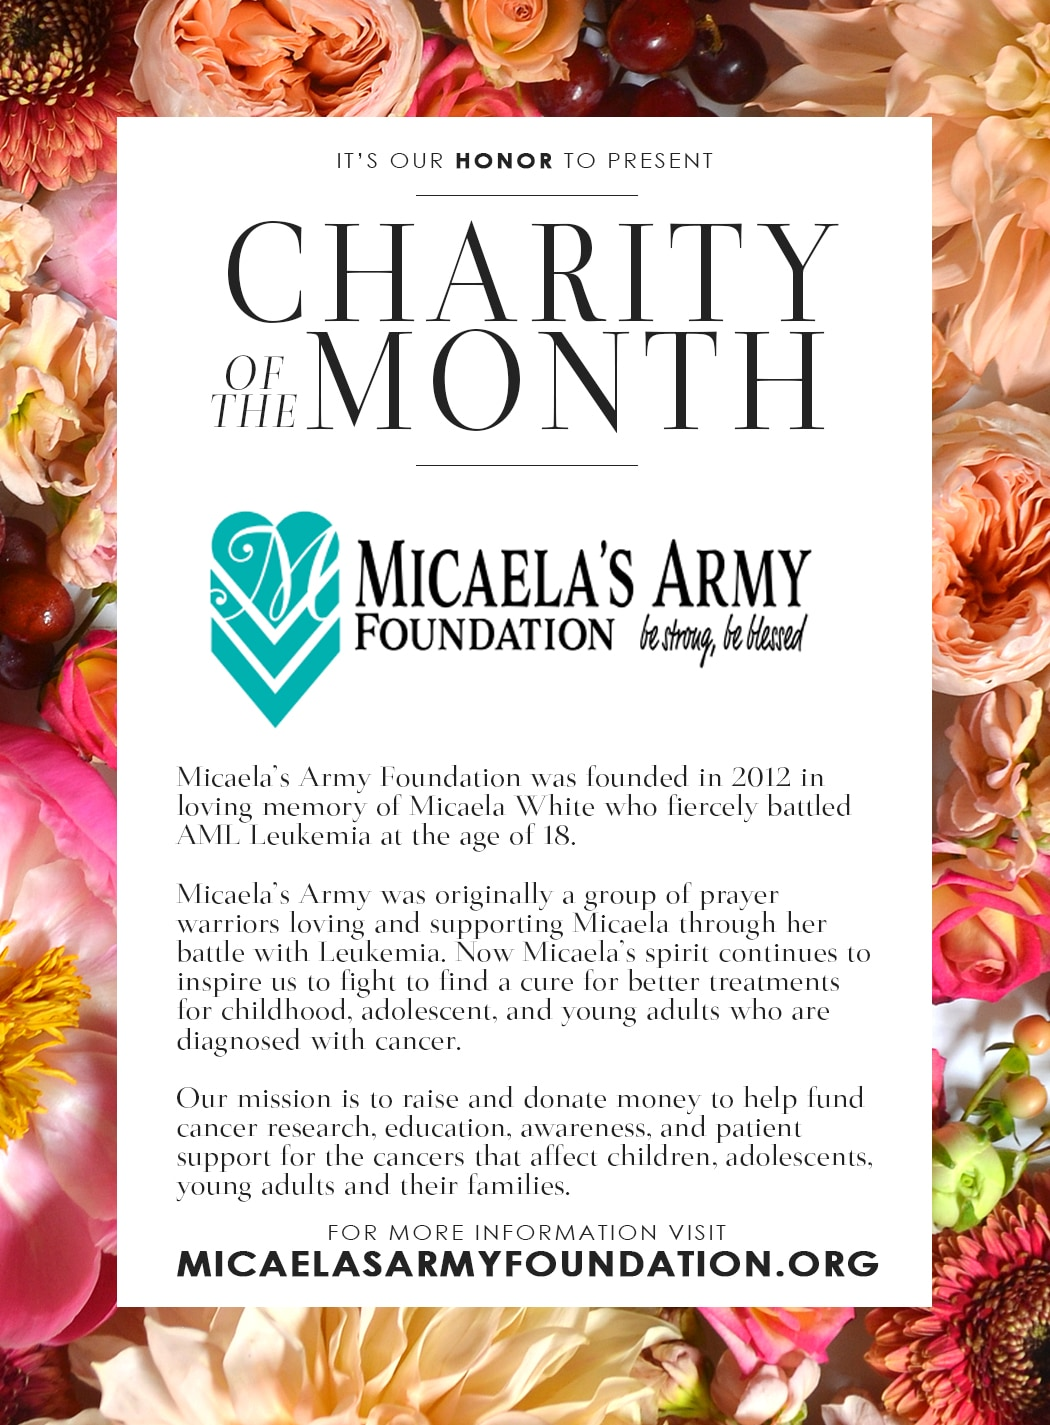 The Micaela's Army Foundation Image